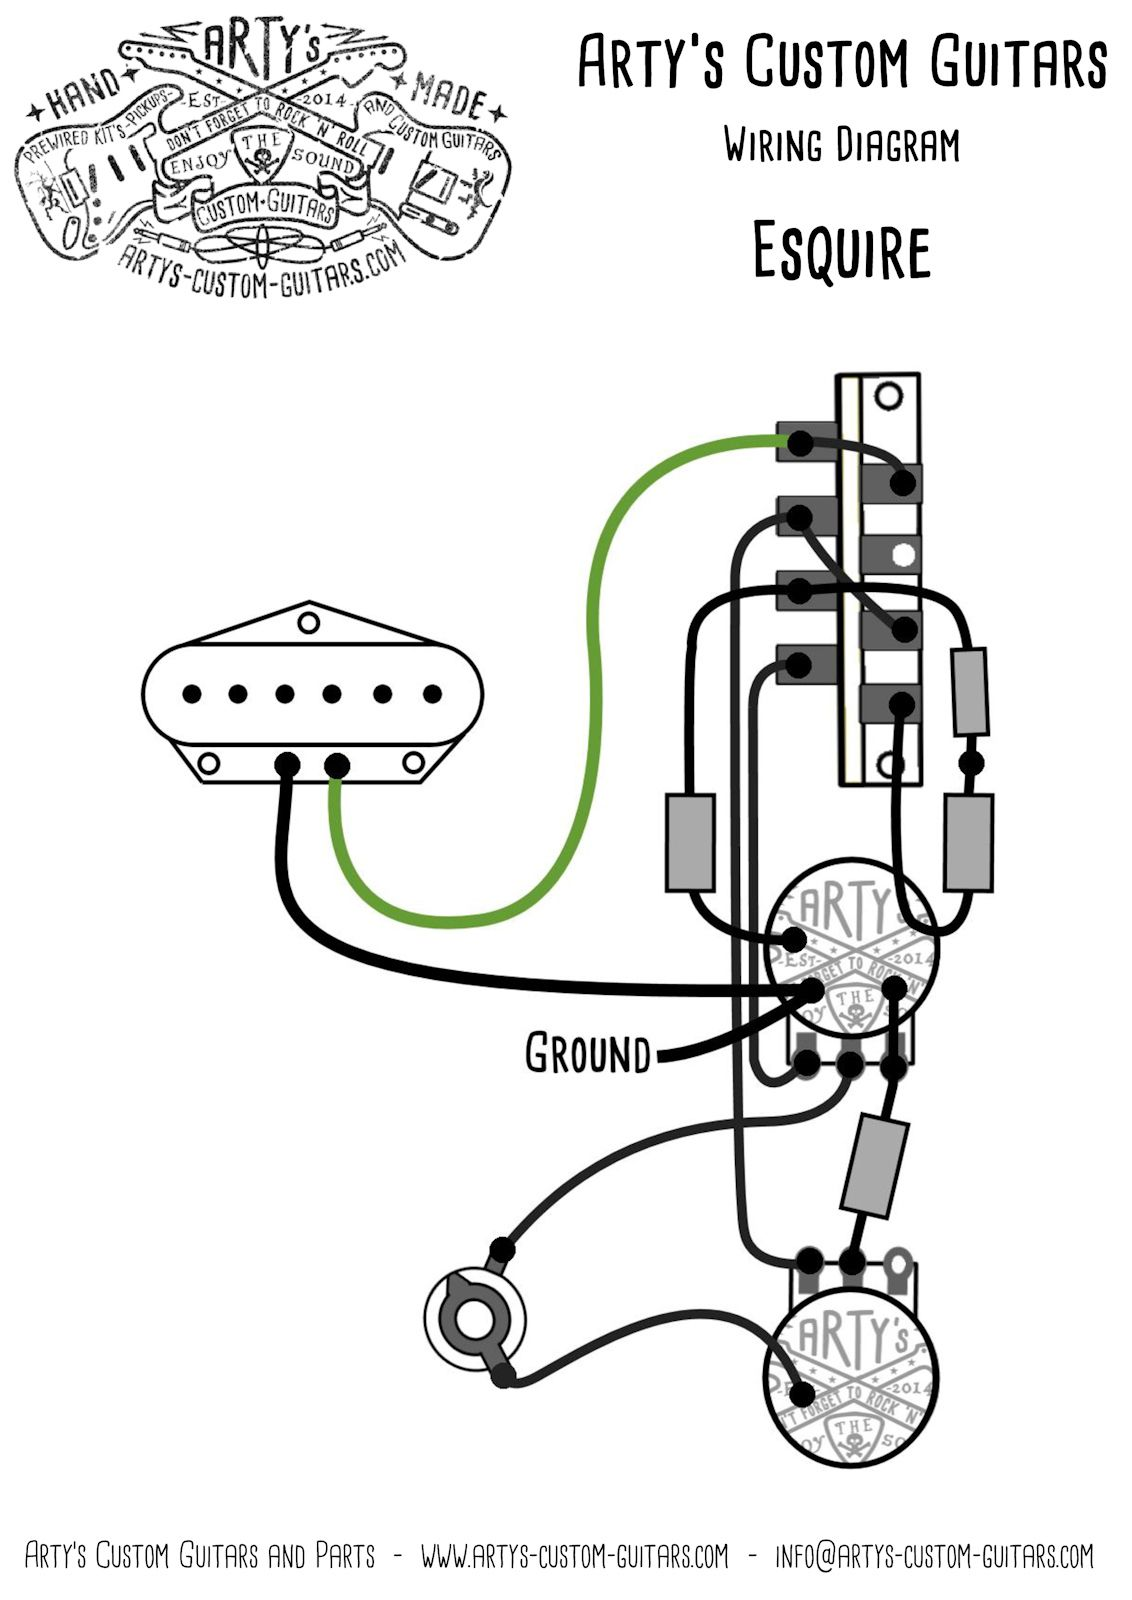 Esquire Wiring Diagram Prewired Kit Arty S Custom Guitars